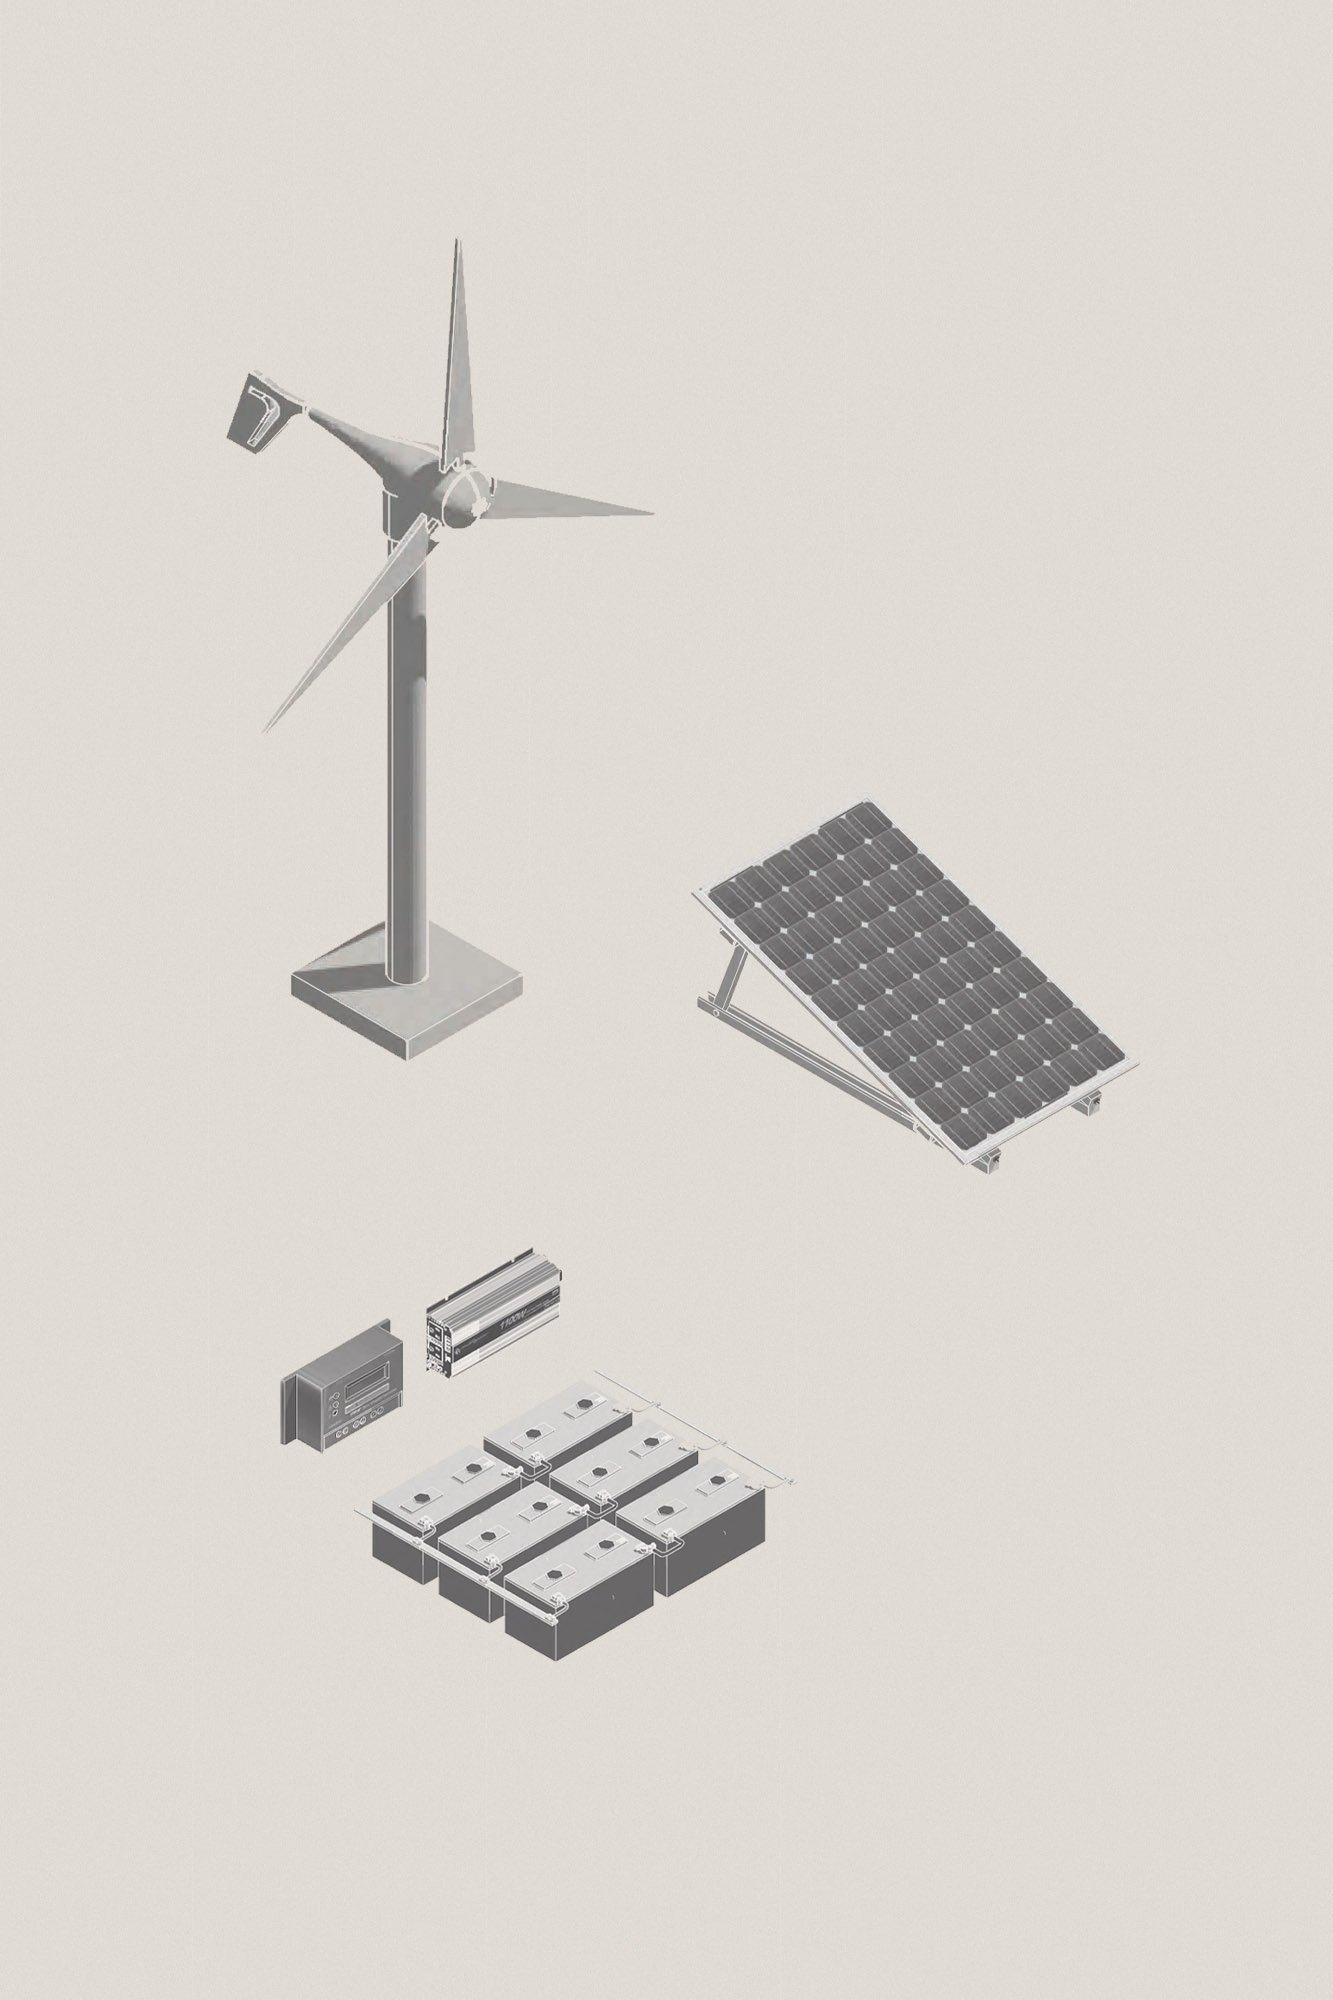 off grid cabin wind turbine, solar panel, charge controllers and battery storage